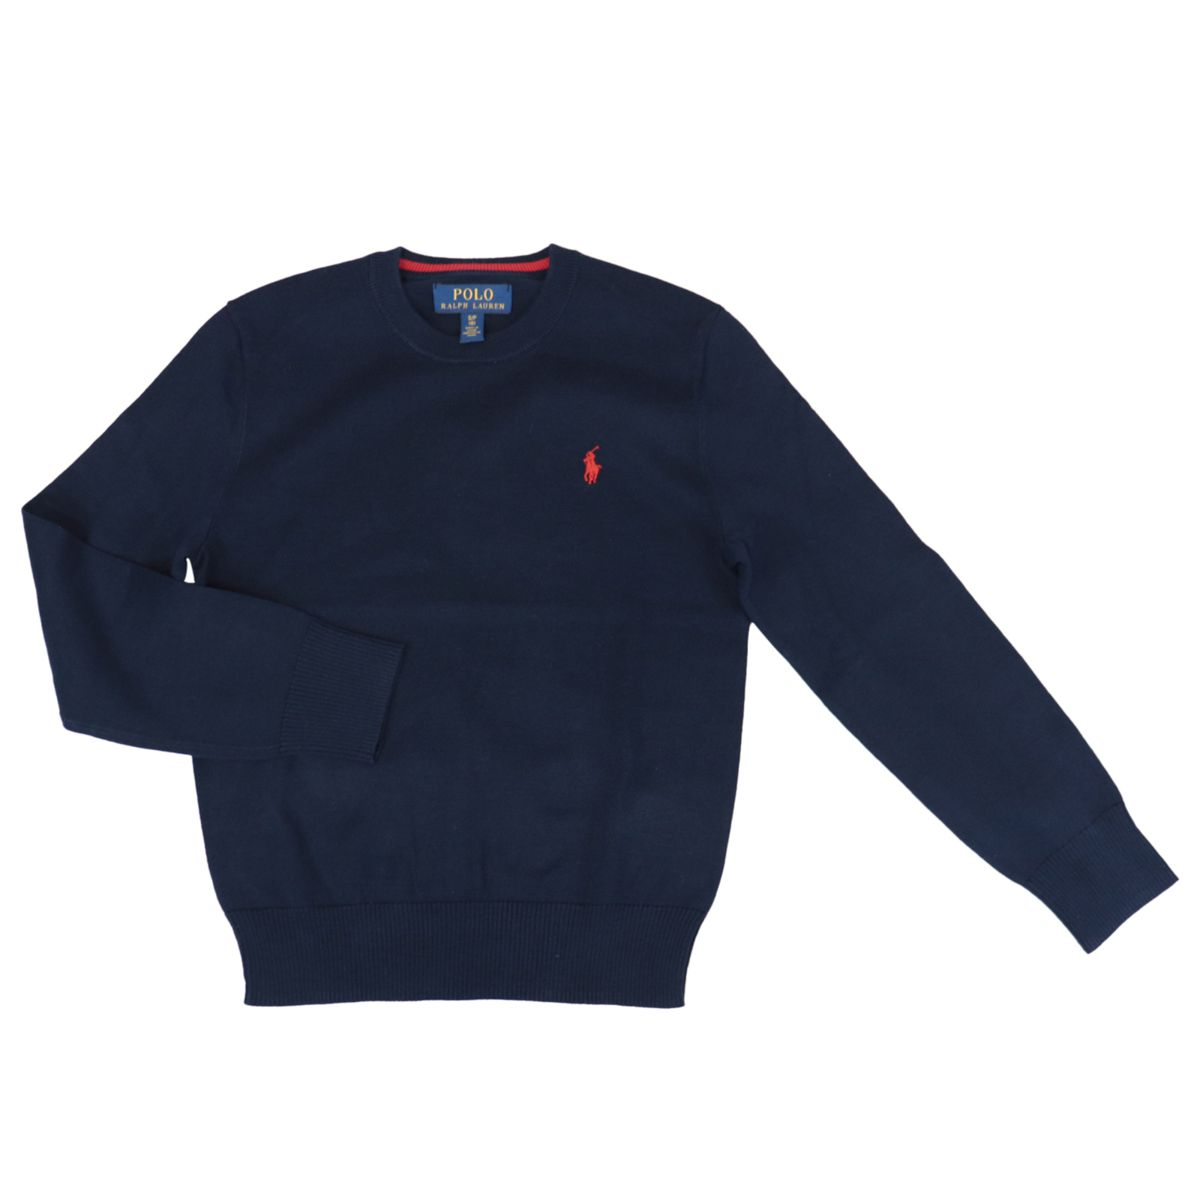 Classic cotton pullover with V-neck and contrasting logo embroidery Navy Polo Ralph Lauren